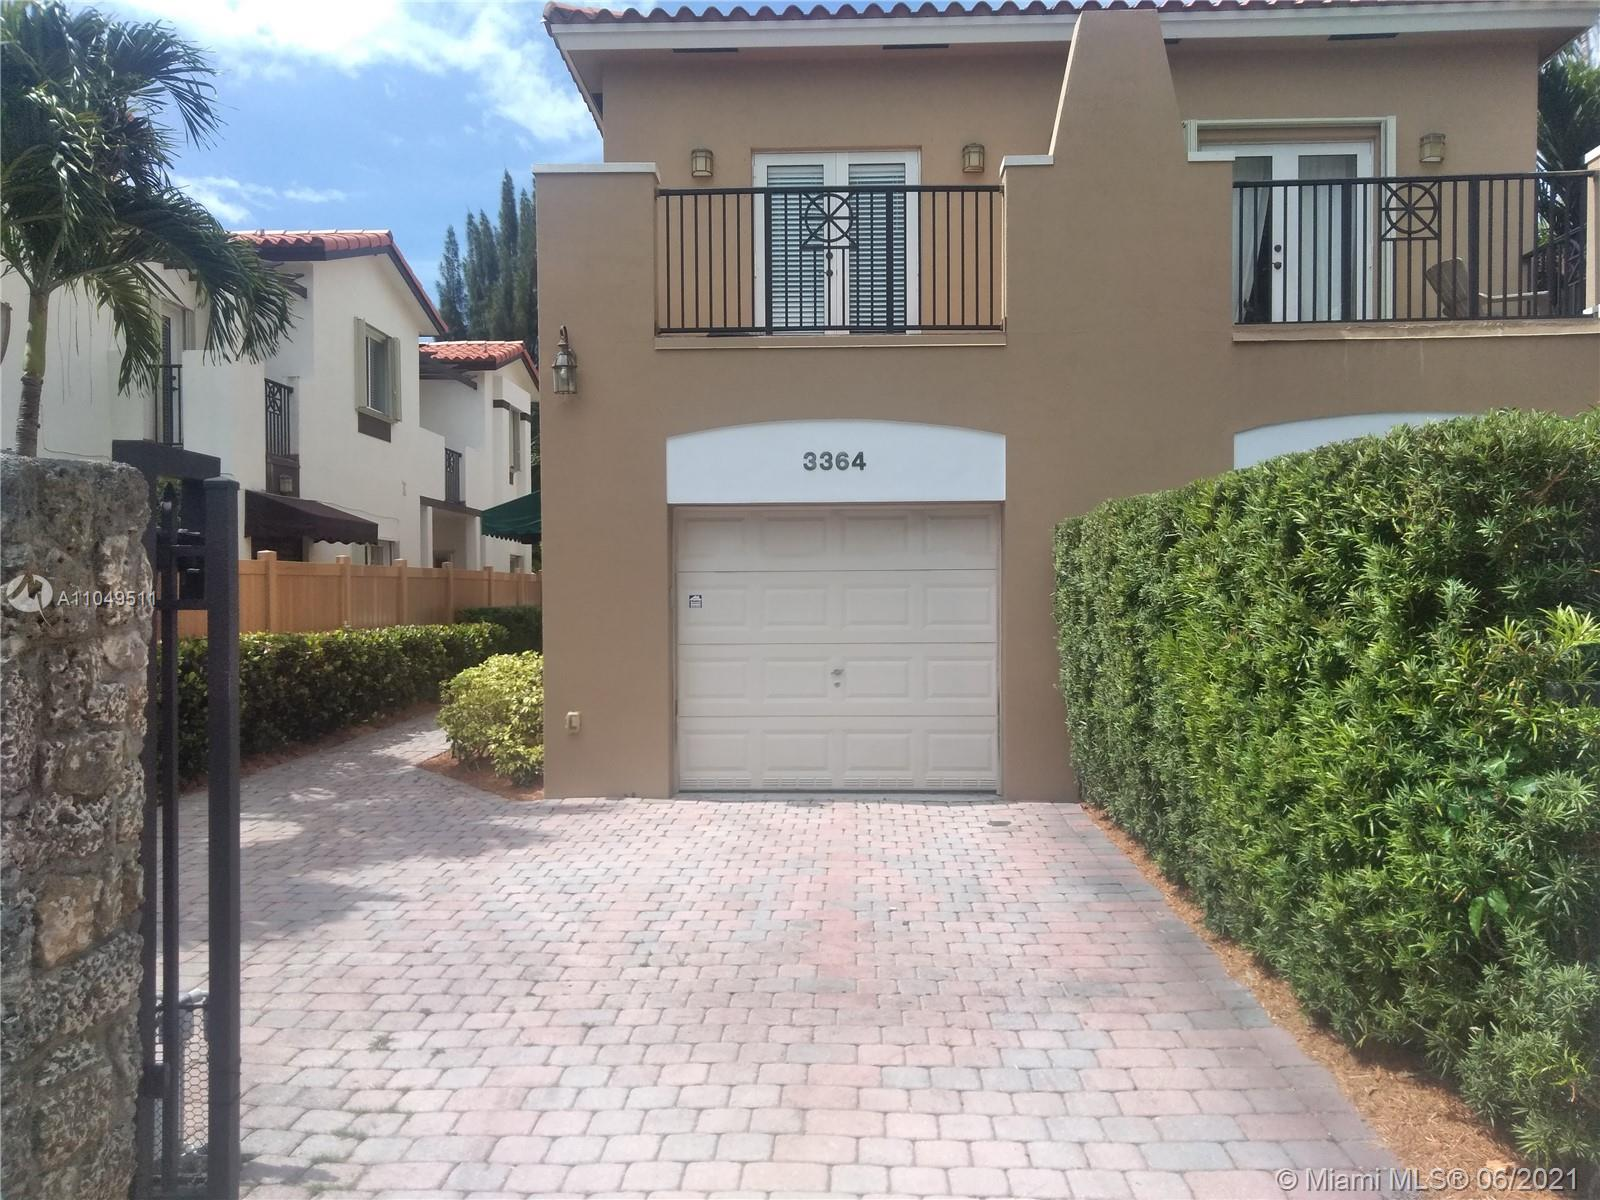 Edge of Coral Gables & Coconut Grove. Executive's townhouse built in 2005. Everything in pristine  condition.  First floor has living room, formal dining room, Cook's kitchen with Bosch stainless appliances, granite countertops, gas stove and desk work area. Half bath.  Family room off kitchen opens to decked patio and private fenced backyard perfect for Fla entertaining!   3 bedrooms upstairs. The large master suite includes spa tub, separate walk in shower, 2 sinks, and  bidet. Cedar lined closet in master.  Laundry room also upstairs.  Every room has lots of natural light with small balconies. Brick paver driveway, gated entry, 1 car garage. Douglas Park nearby.  Close to Metrorail, Bascom Palmer, Mercy hospital, minutes to Airport, Gables/Grove business districts.